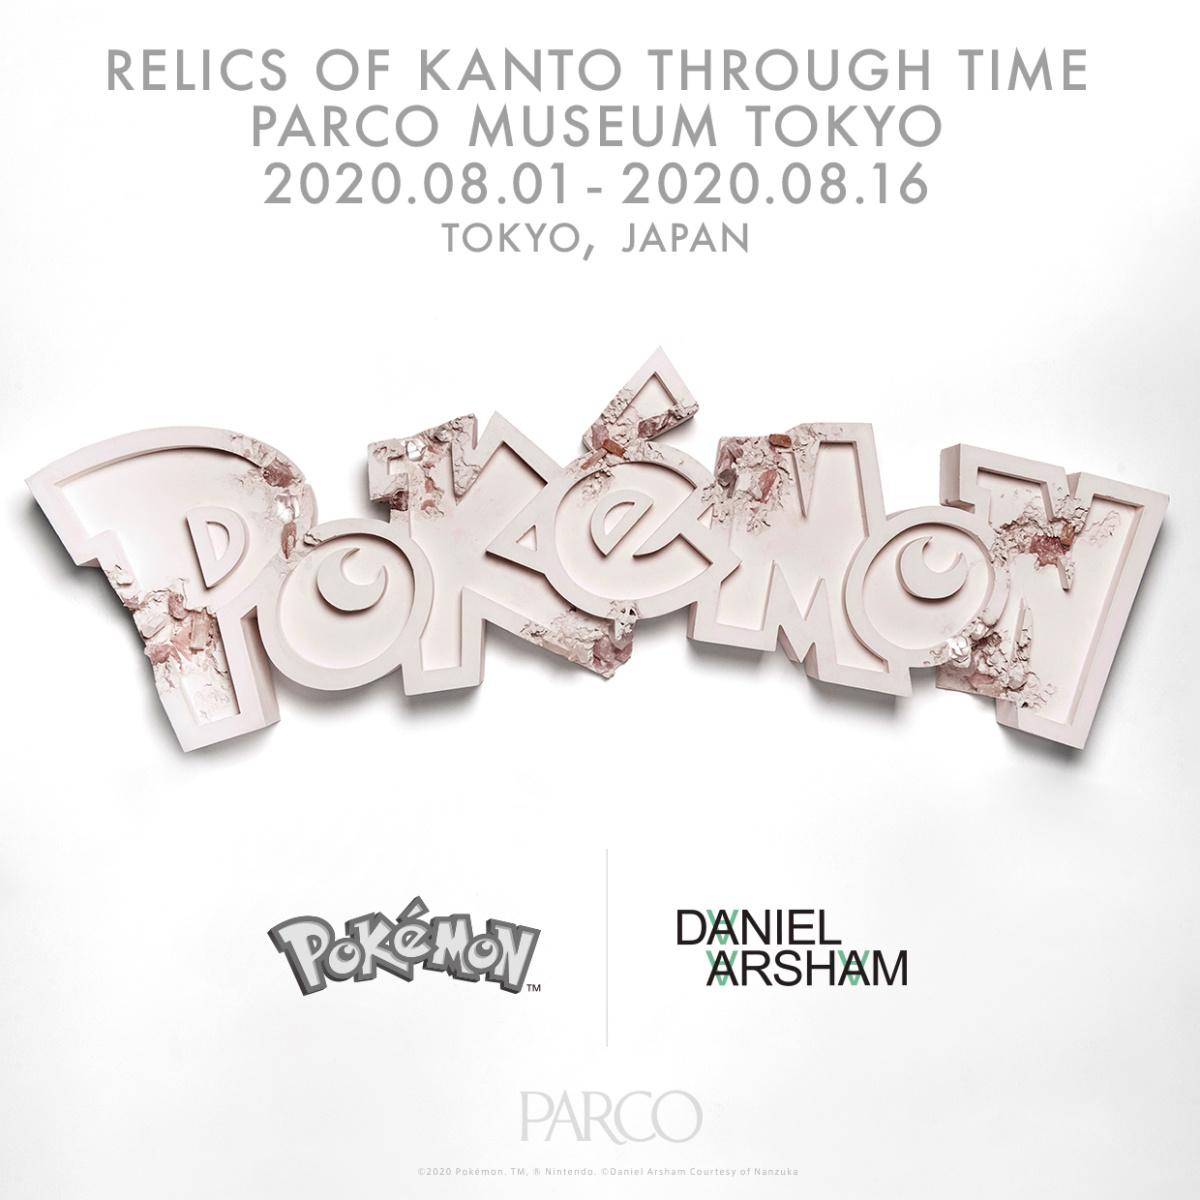 Relics of Kanto Through Time at PARCO MUSEUM TOKYO